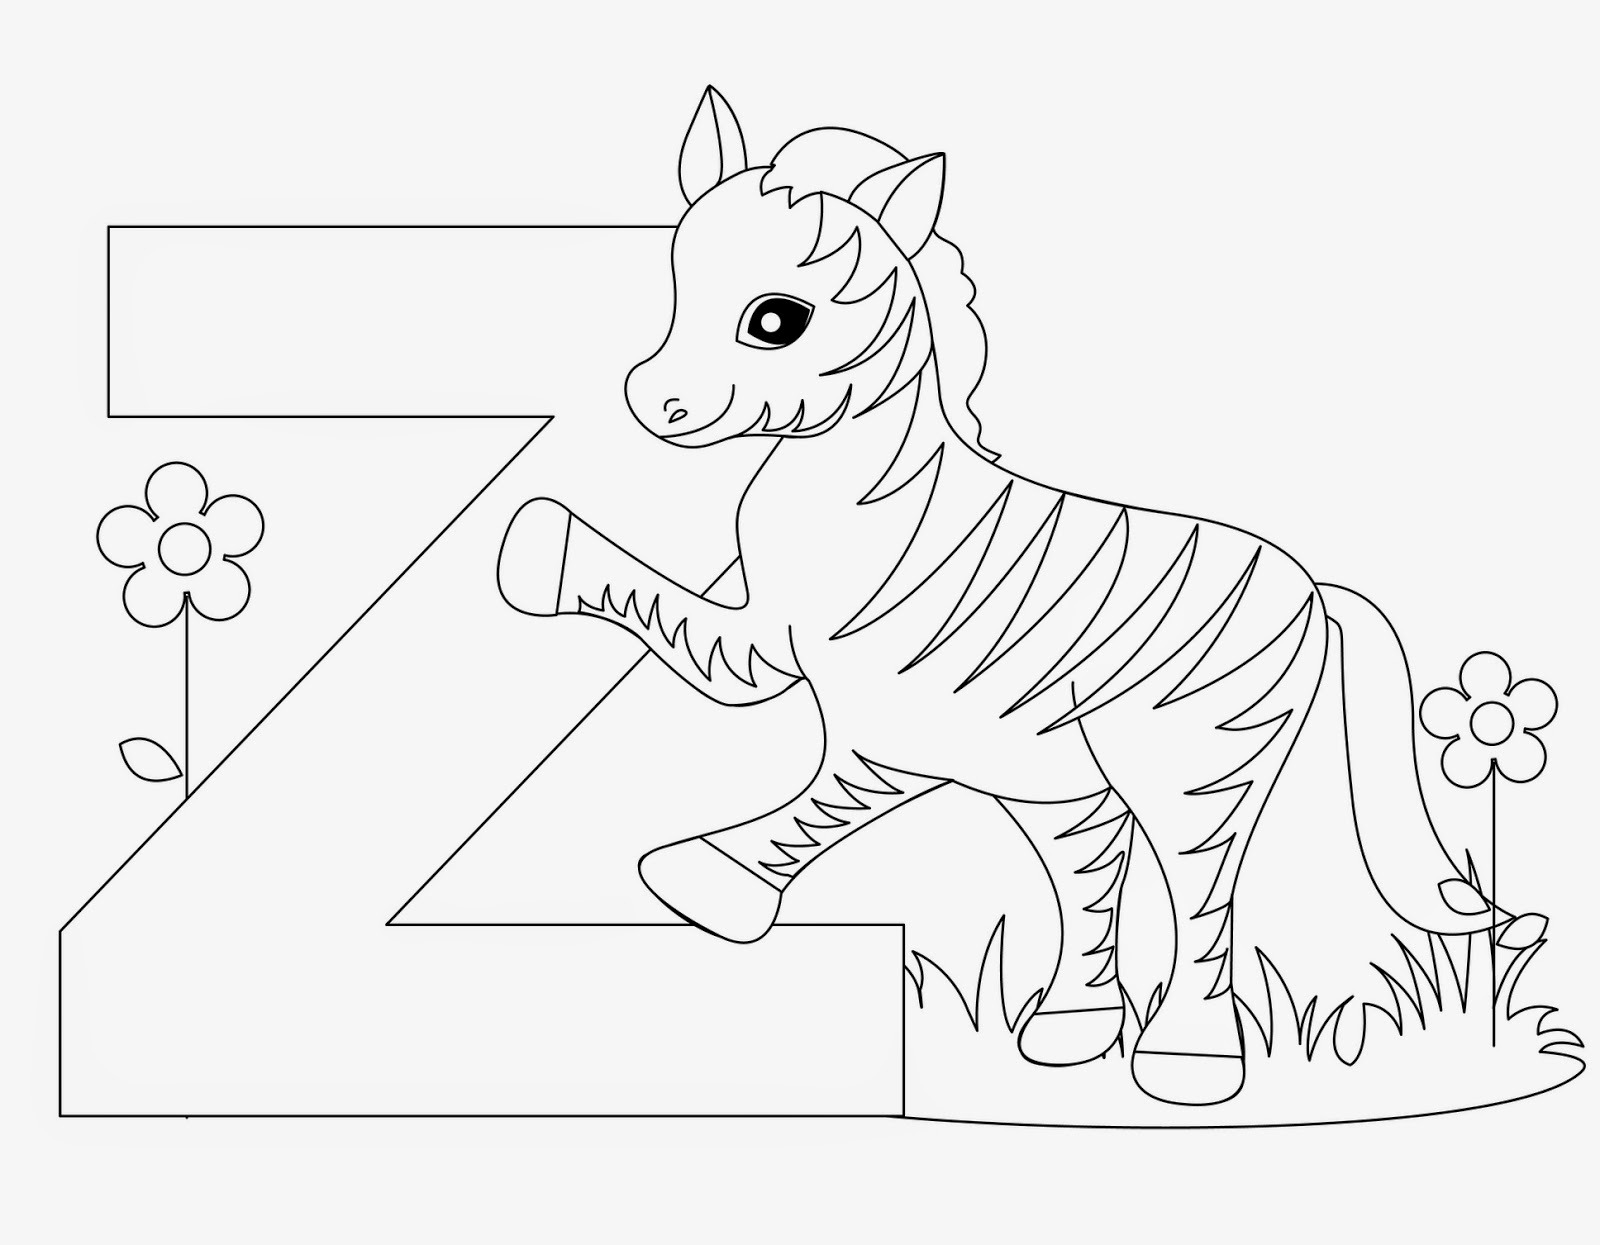 a to z alphabet coloring pages kids page z is for zebra animal alphabet letters worksheet a z alphabet pages to coloring